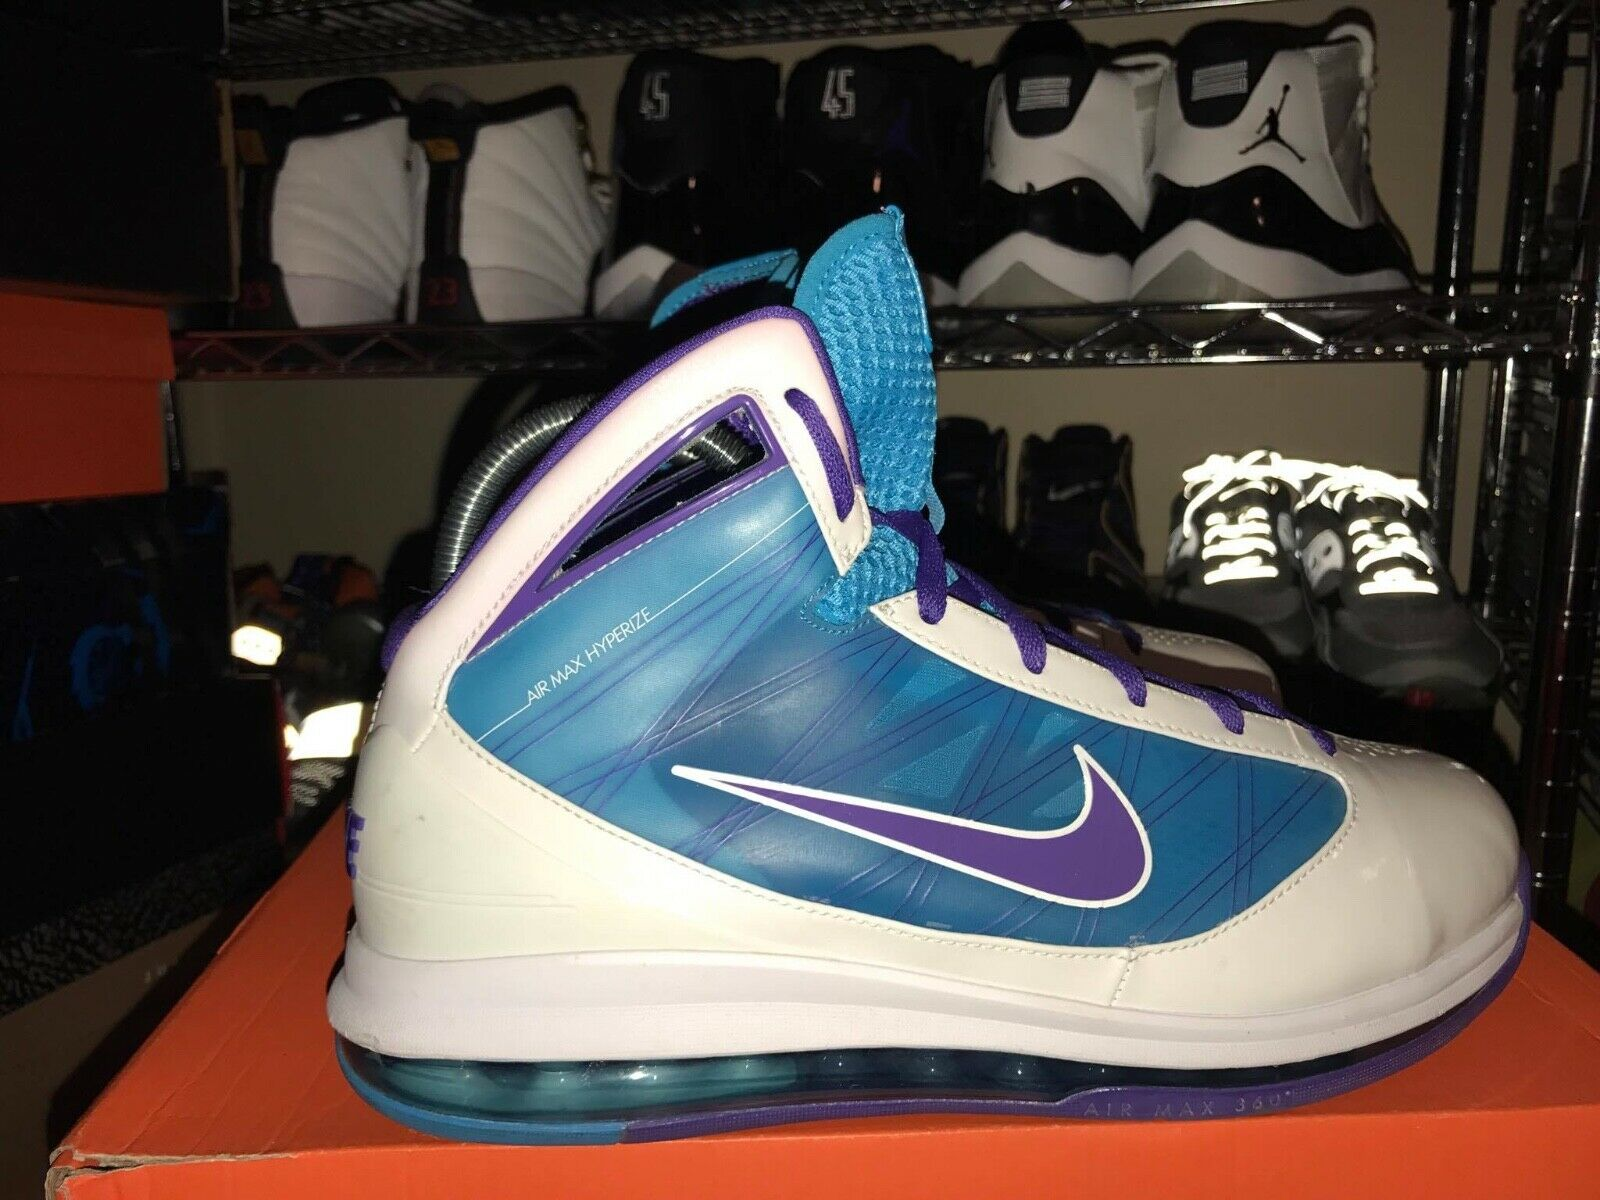 NIKE HYPERIZE MAX DAVID WEST PE WHITE SIZE 11